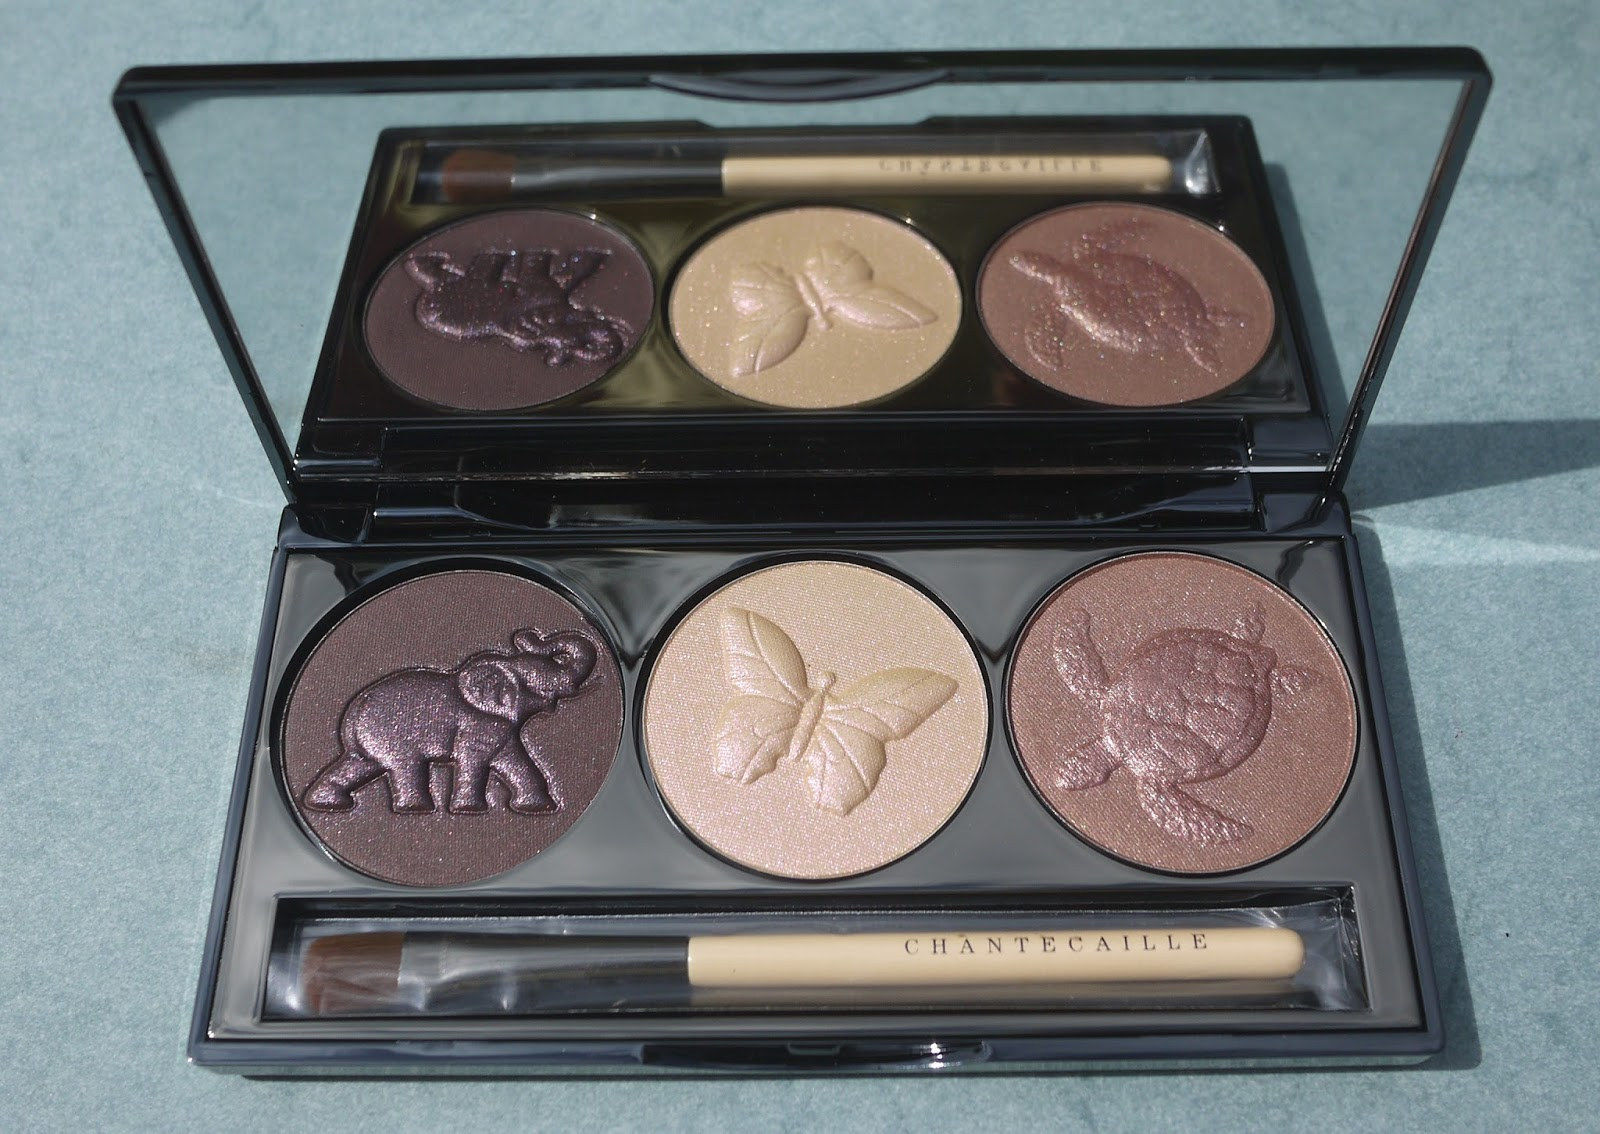 Chantecaille launches beauty palette to raise funds for wild horses foto